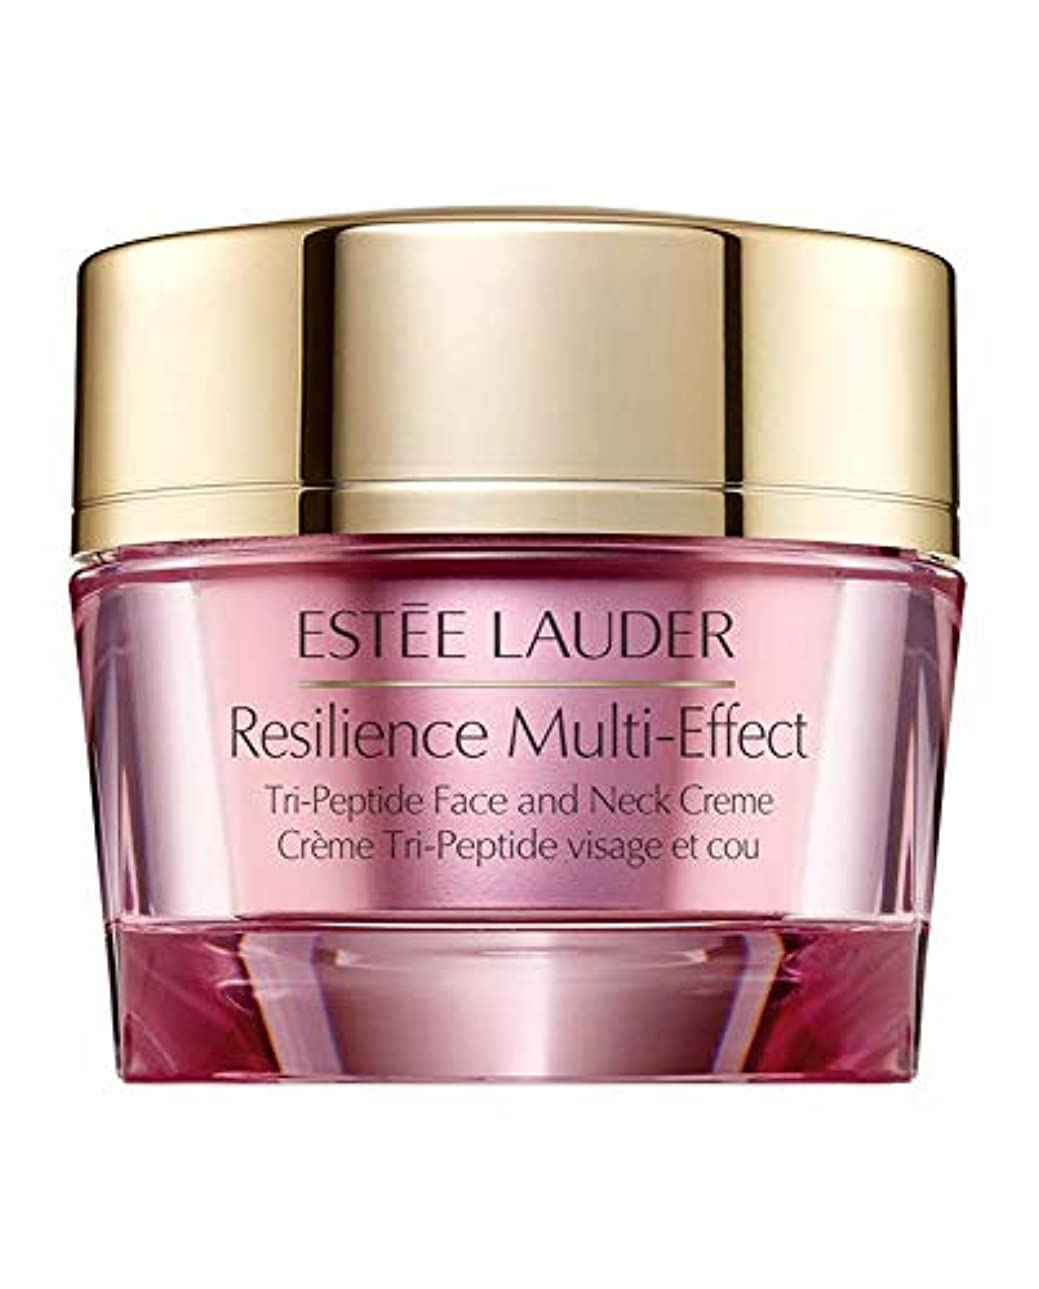 長さリムシプリーエスティローダー Resilience Multi-Effect Tri-Peptide Face and Neck Creme SPF 15 - For Normal/Combination Skin 50ml/1.7oz...